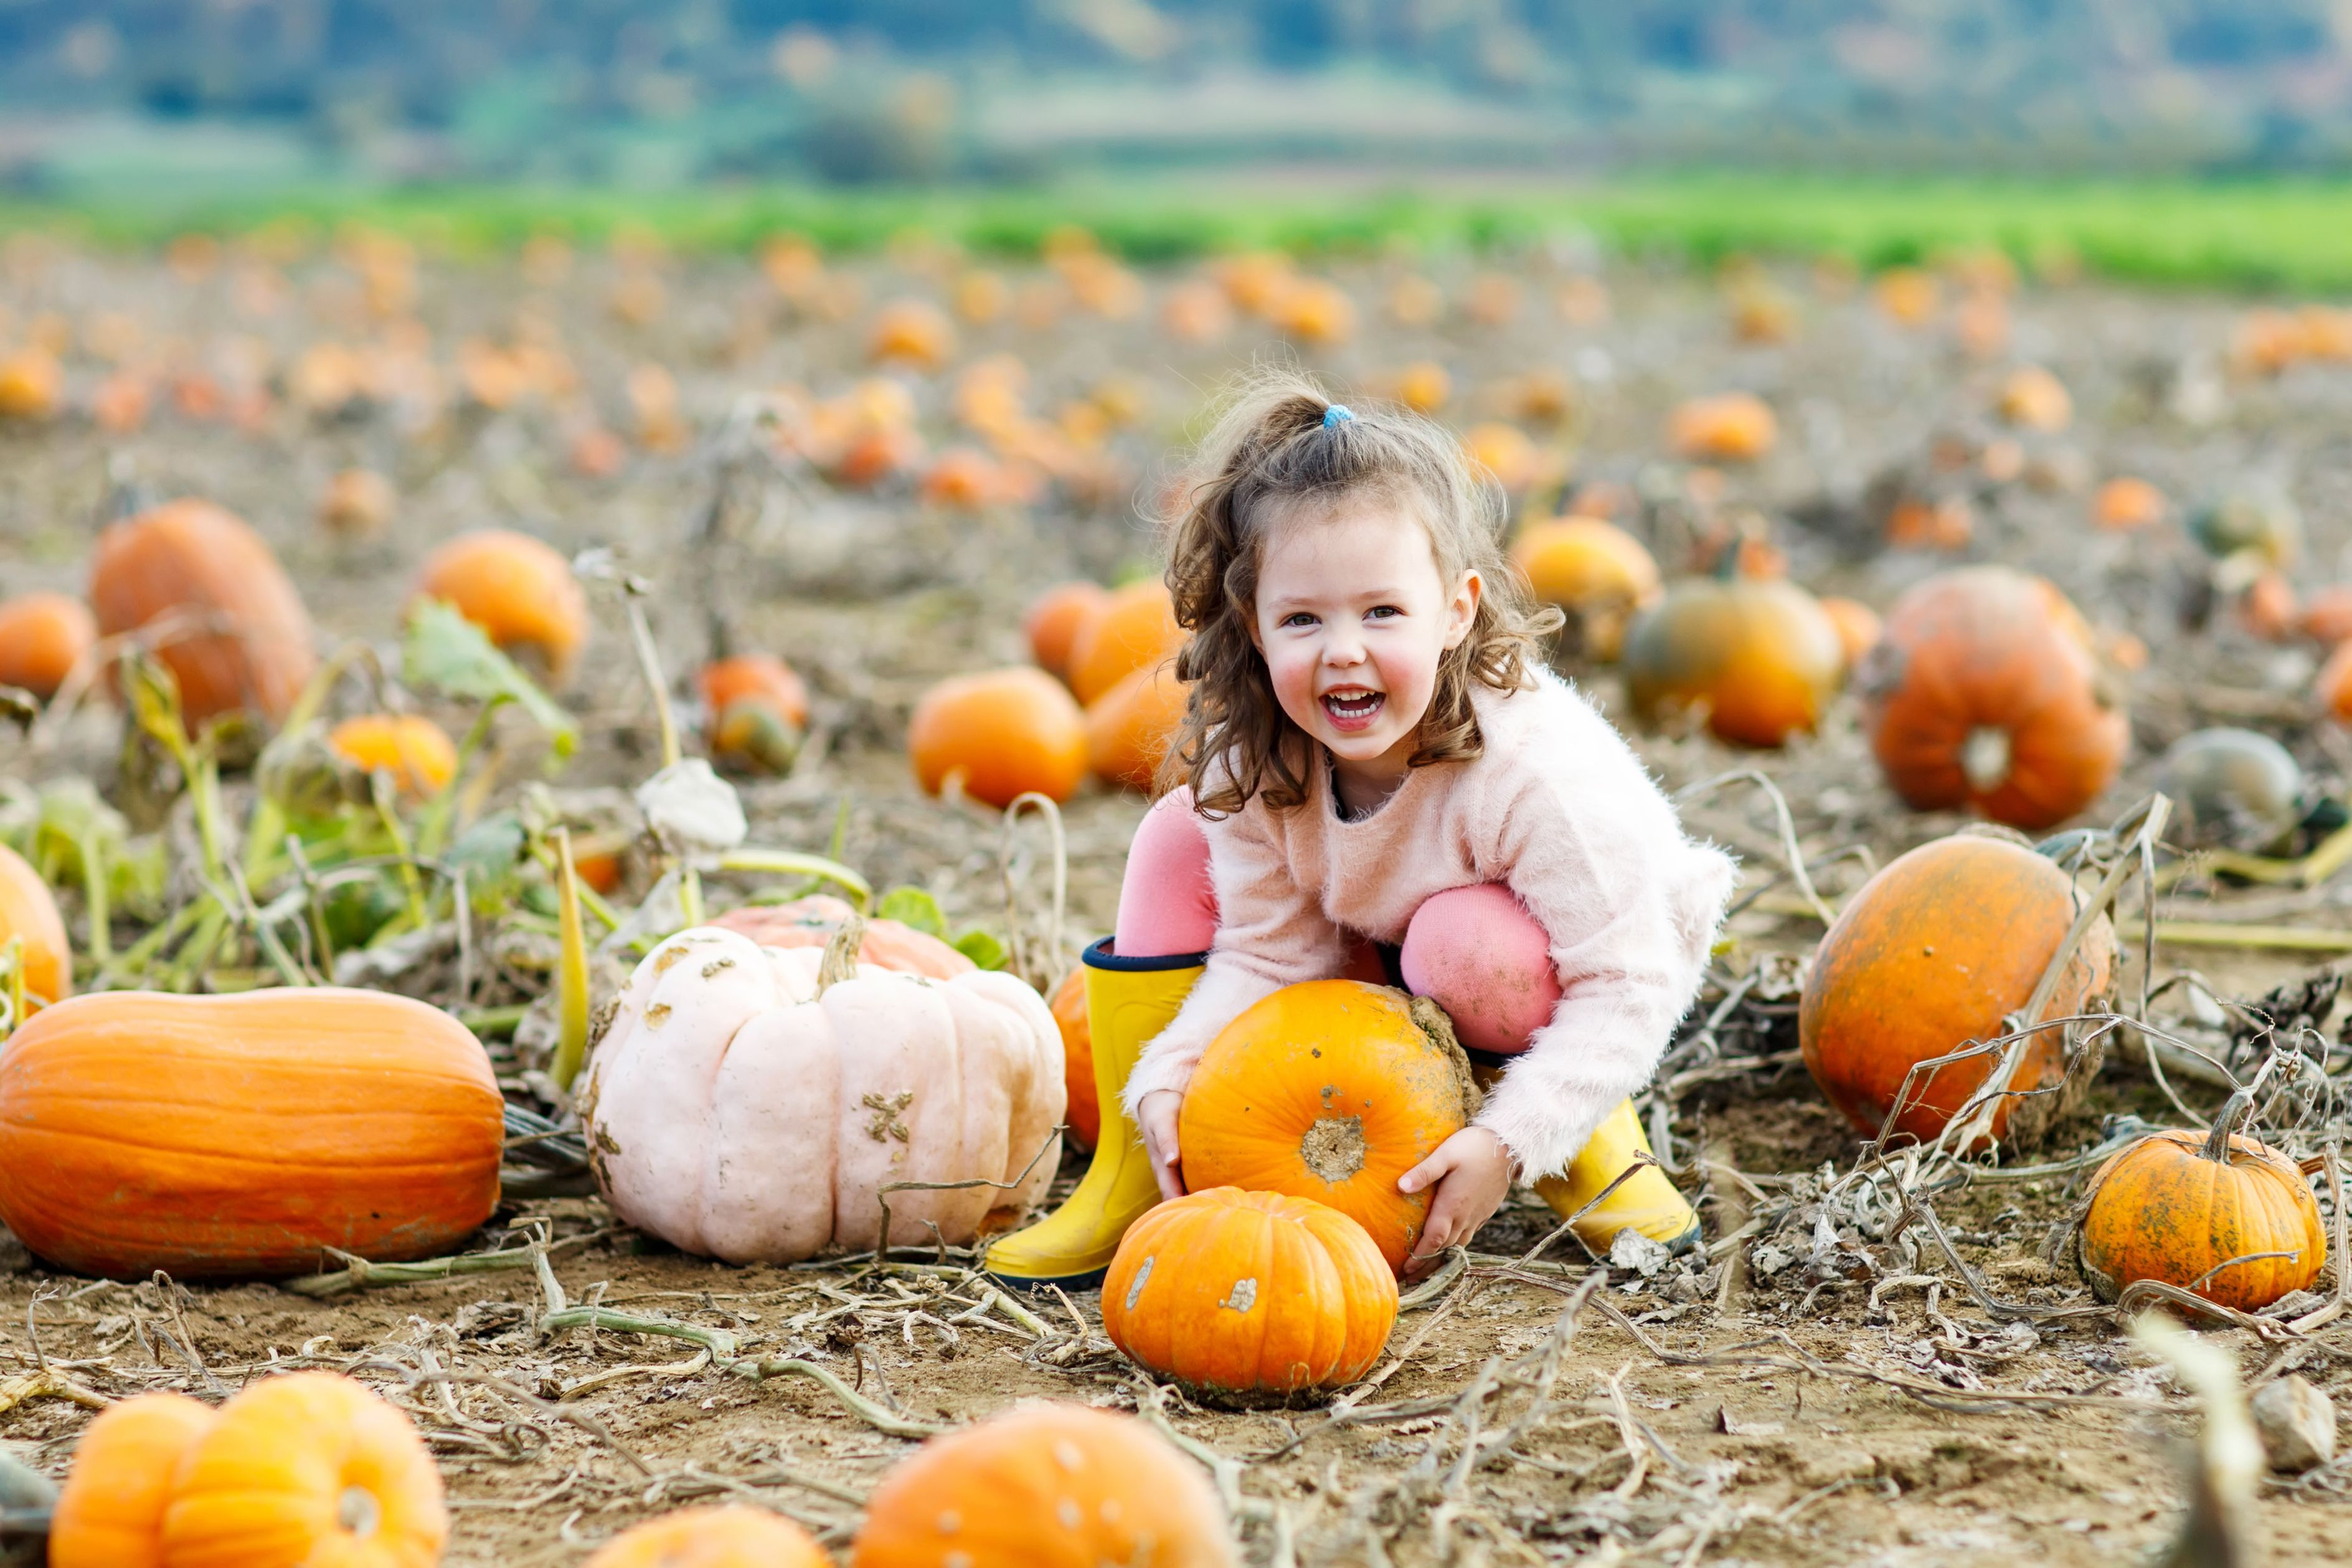 Fall Family Fun Starts at the Pumpkin Patch!